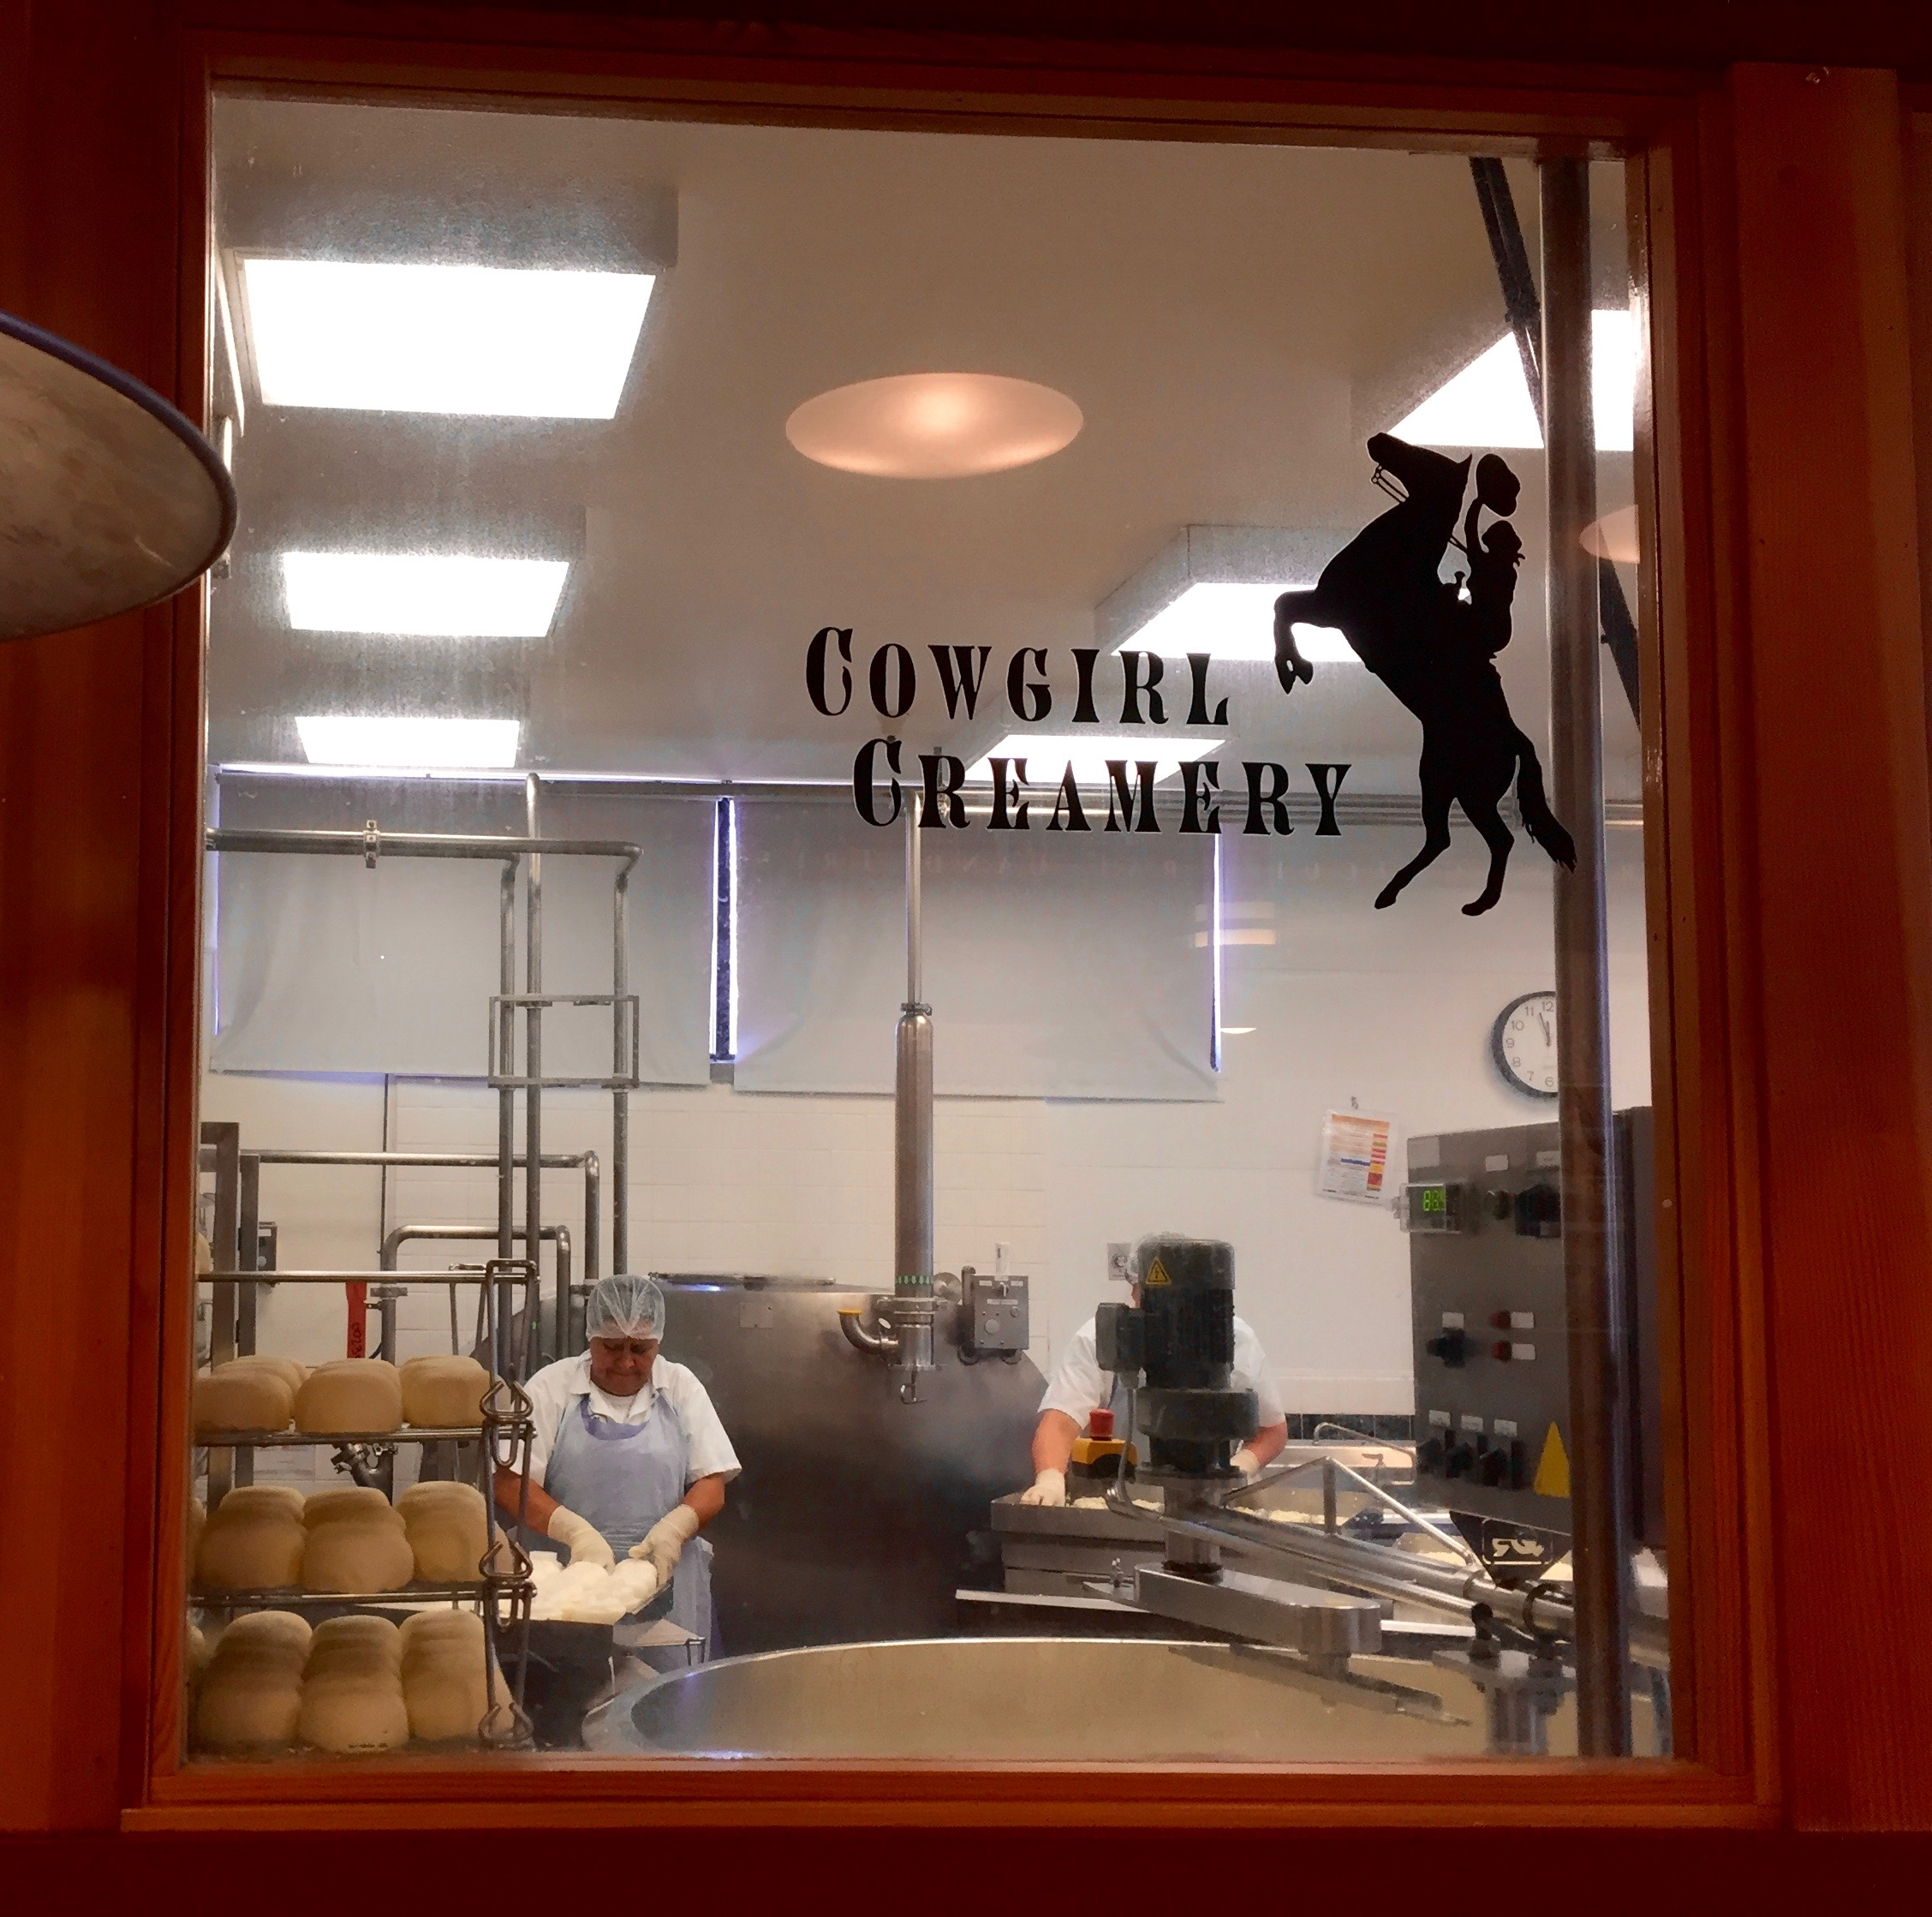 A cheesemaker in action at Cowgirl Creamery. Mt Tam triple cream, please!